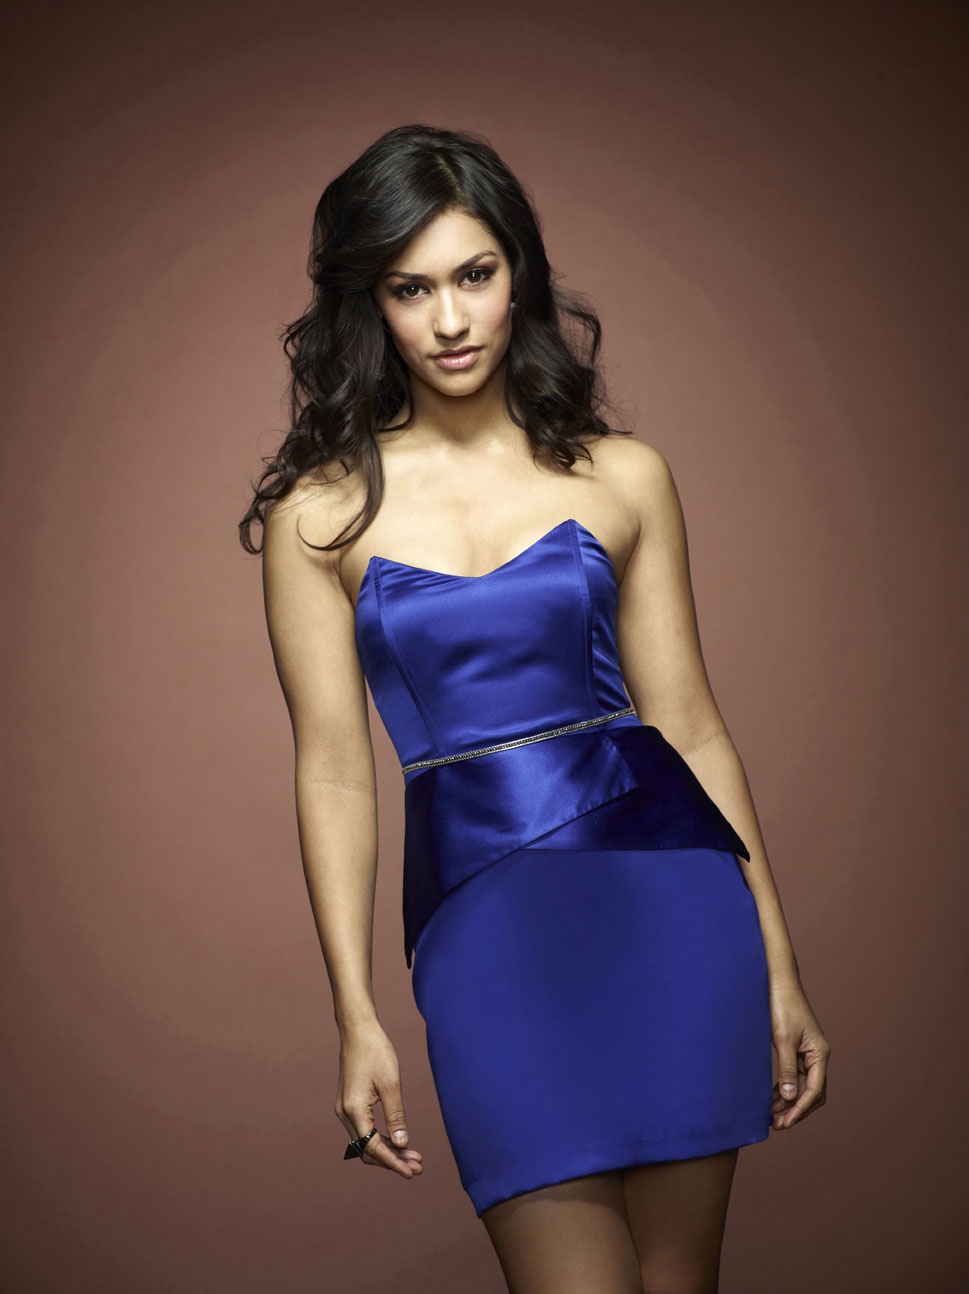 Janina Gavankar True Blood Season 4 official HBO portrait photo